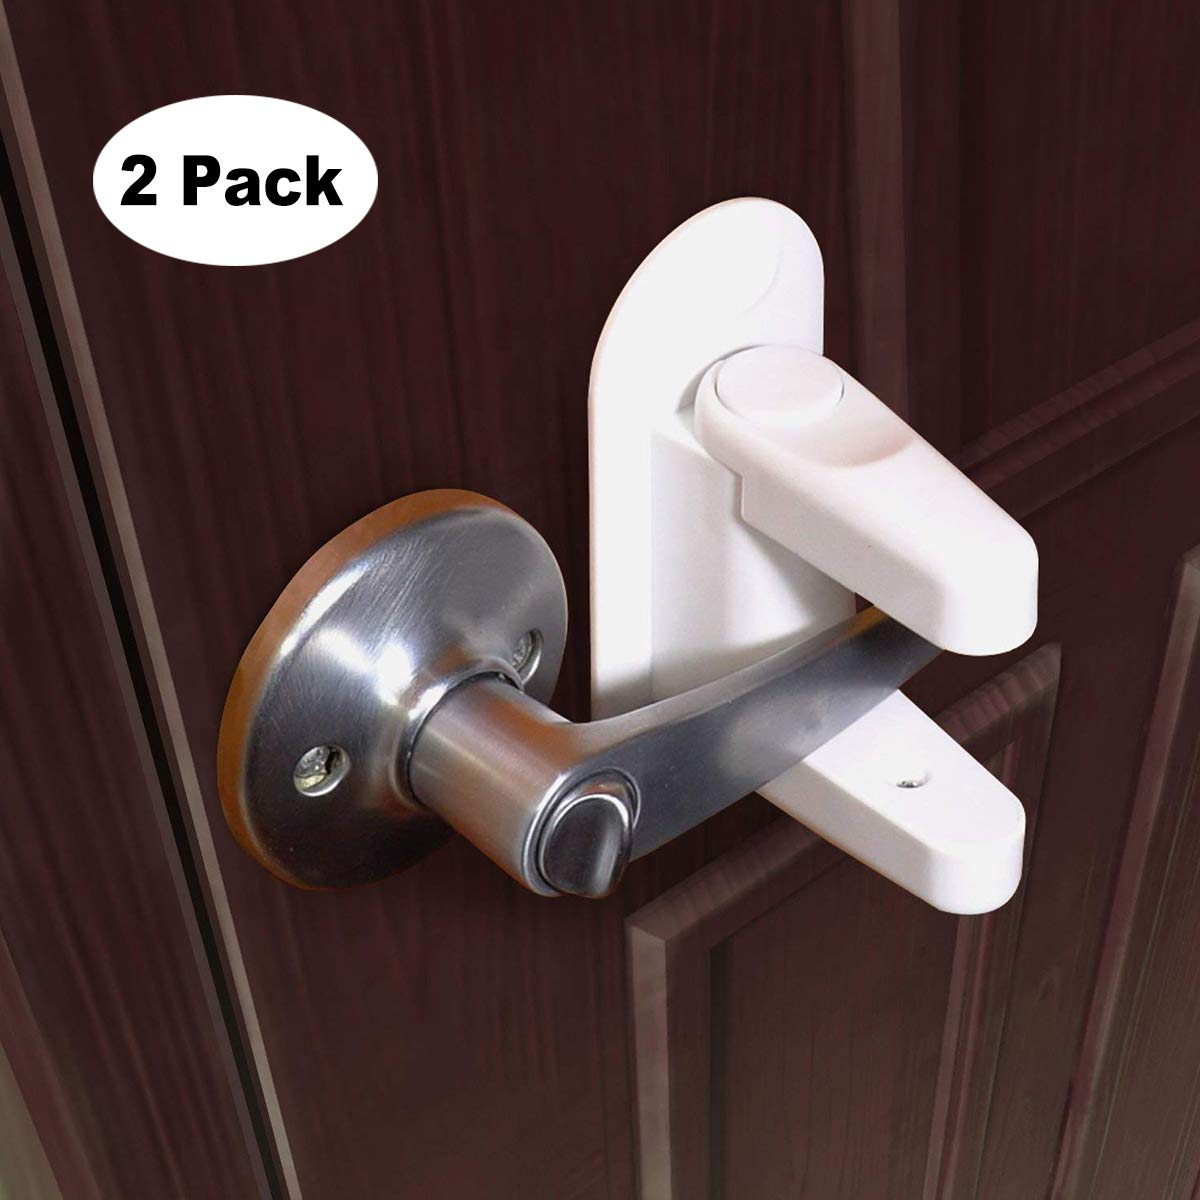 Baby Safety Lock Door Handle HIDARLING Door Lever Lock 3M Adhesive 2 Pack Child Safety Locks (White)